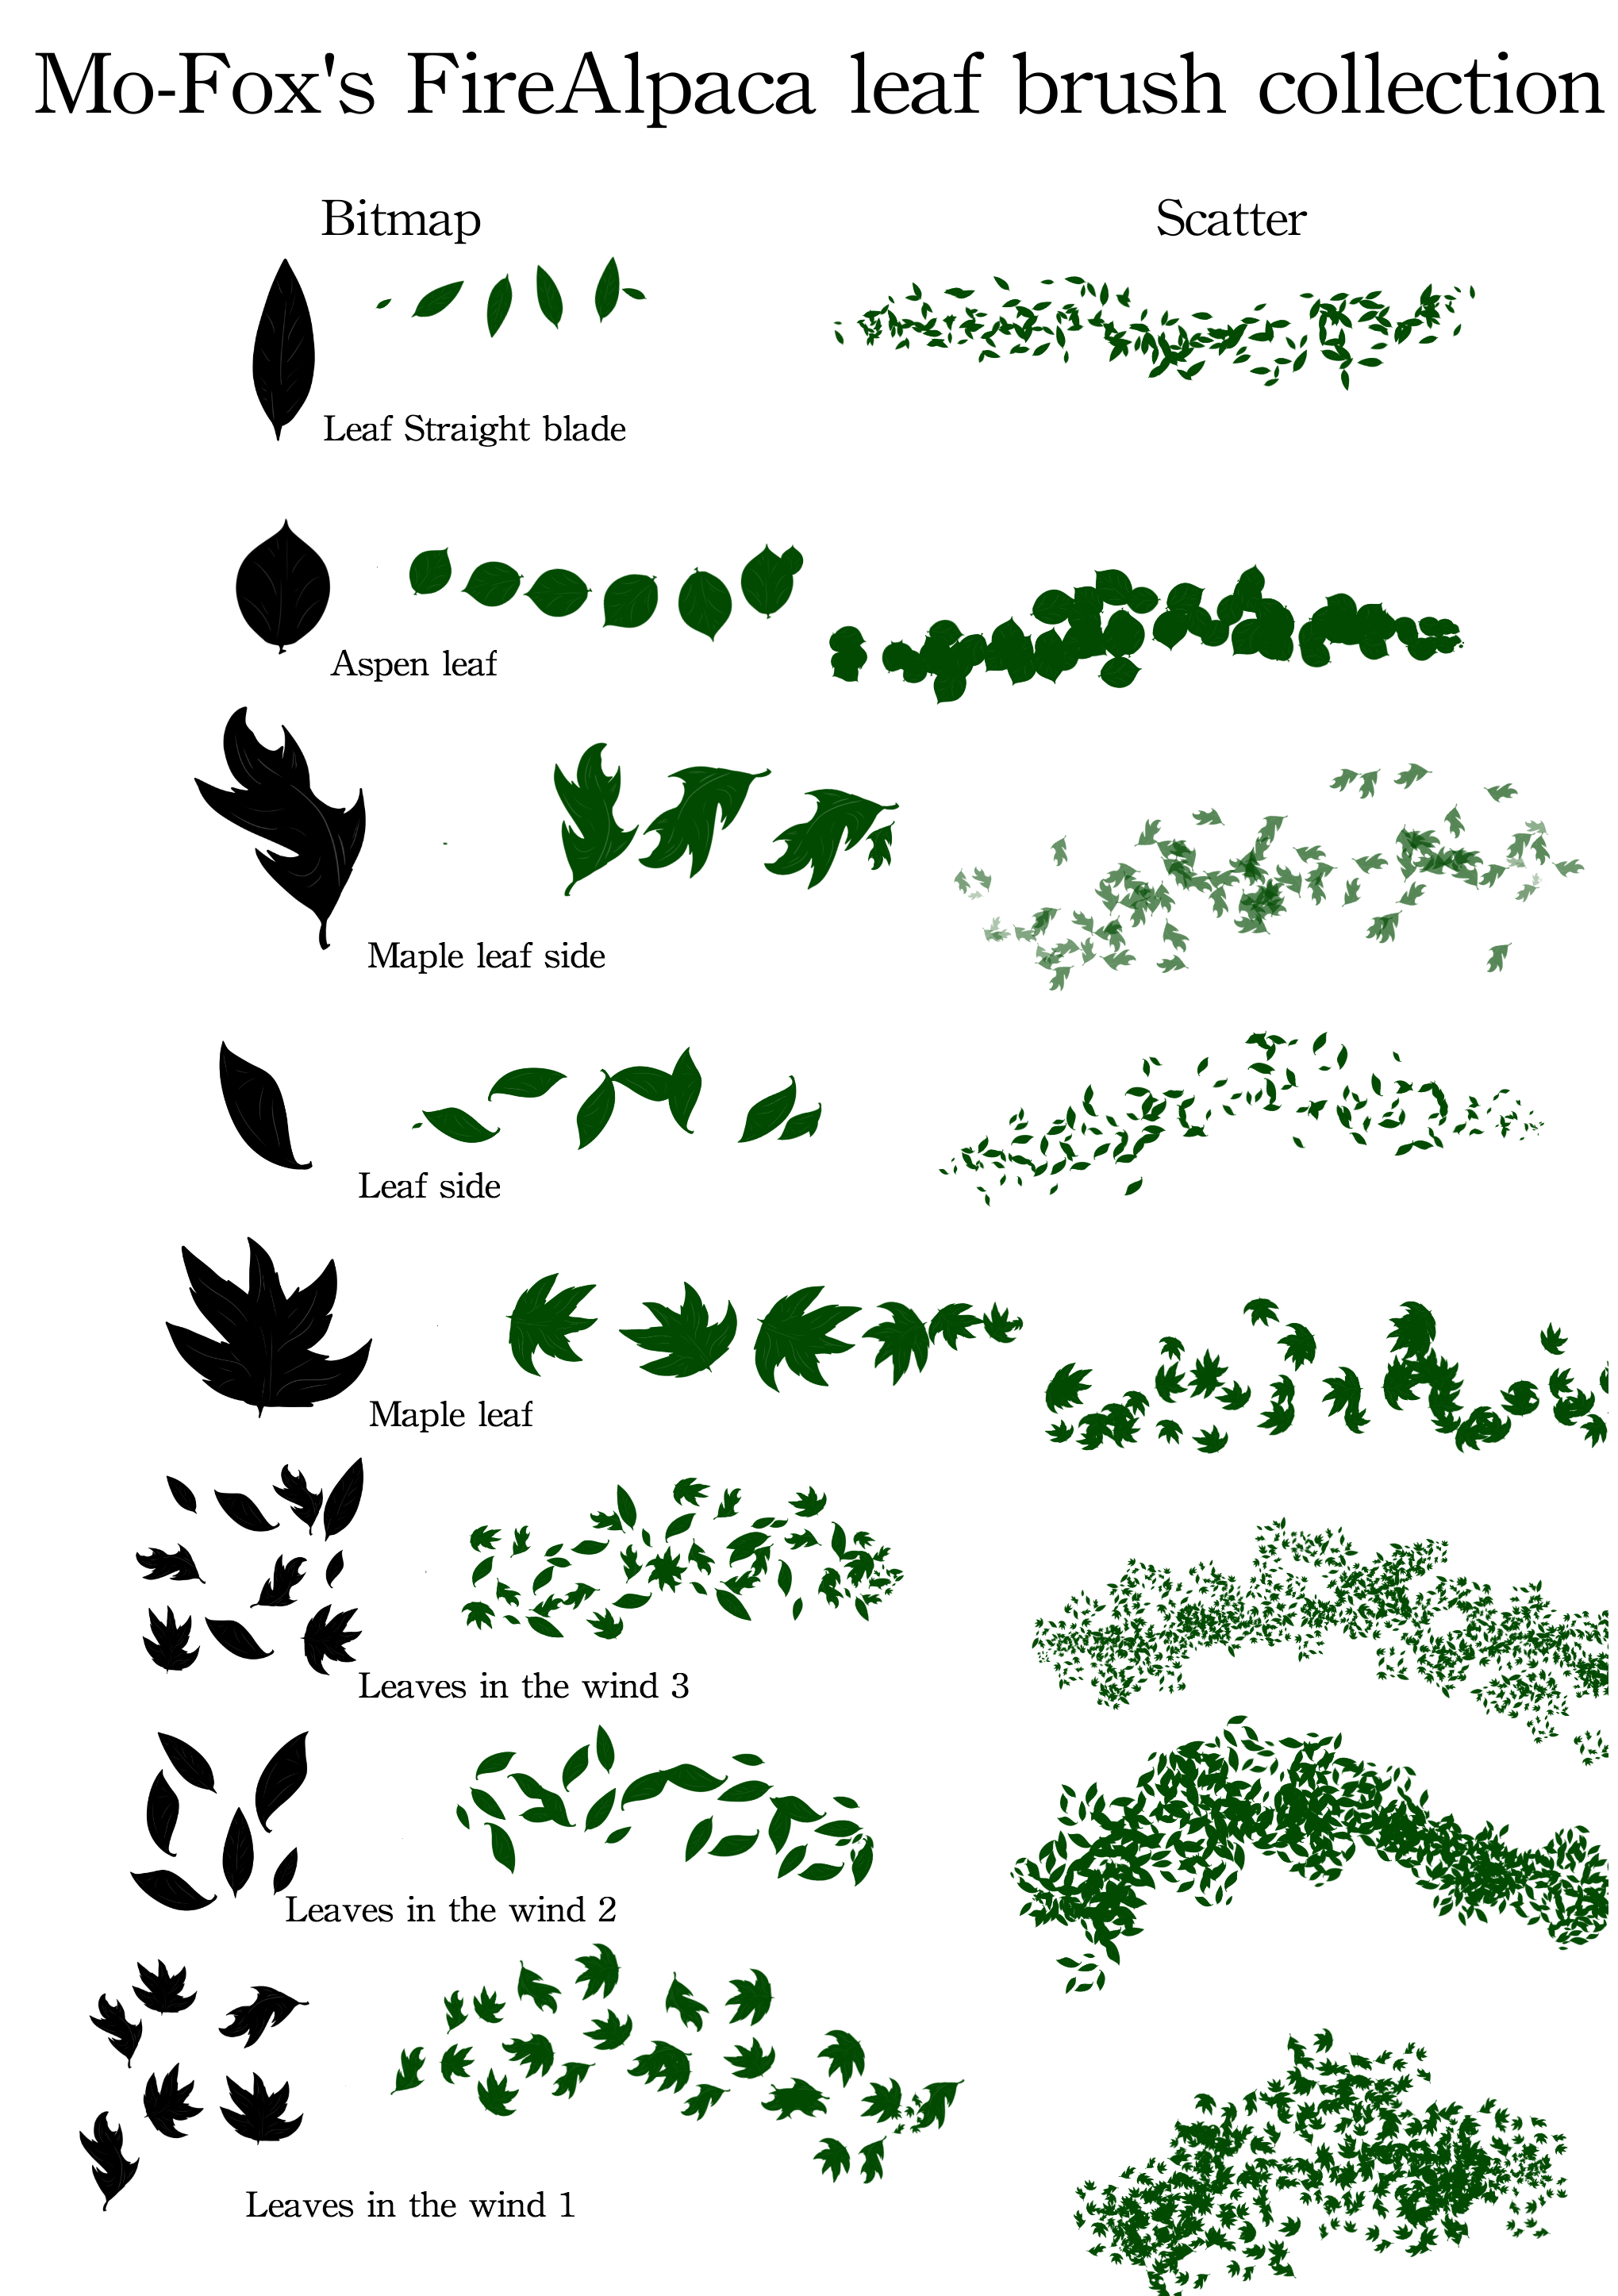 free leaf brushes for firealpaca by mo fox on deviantart